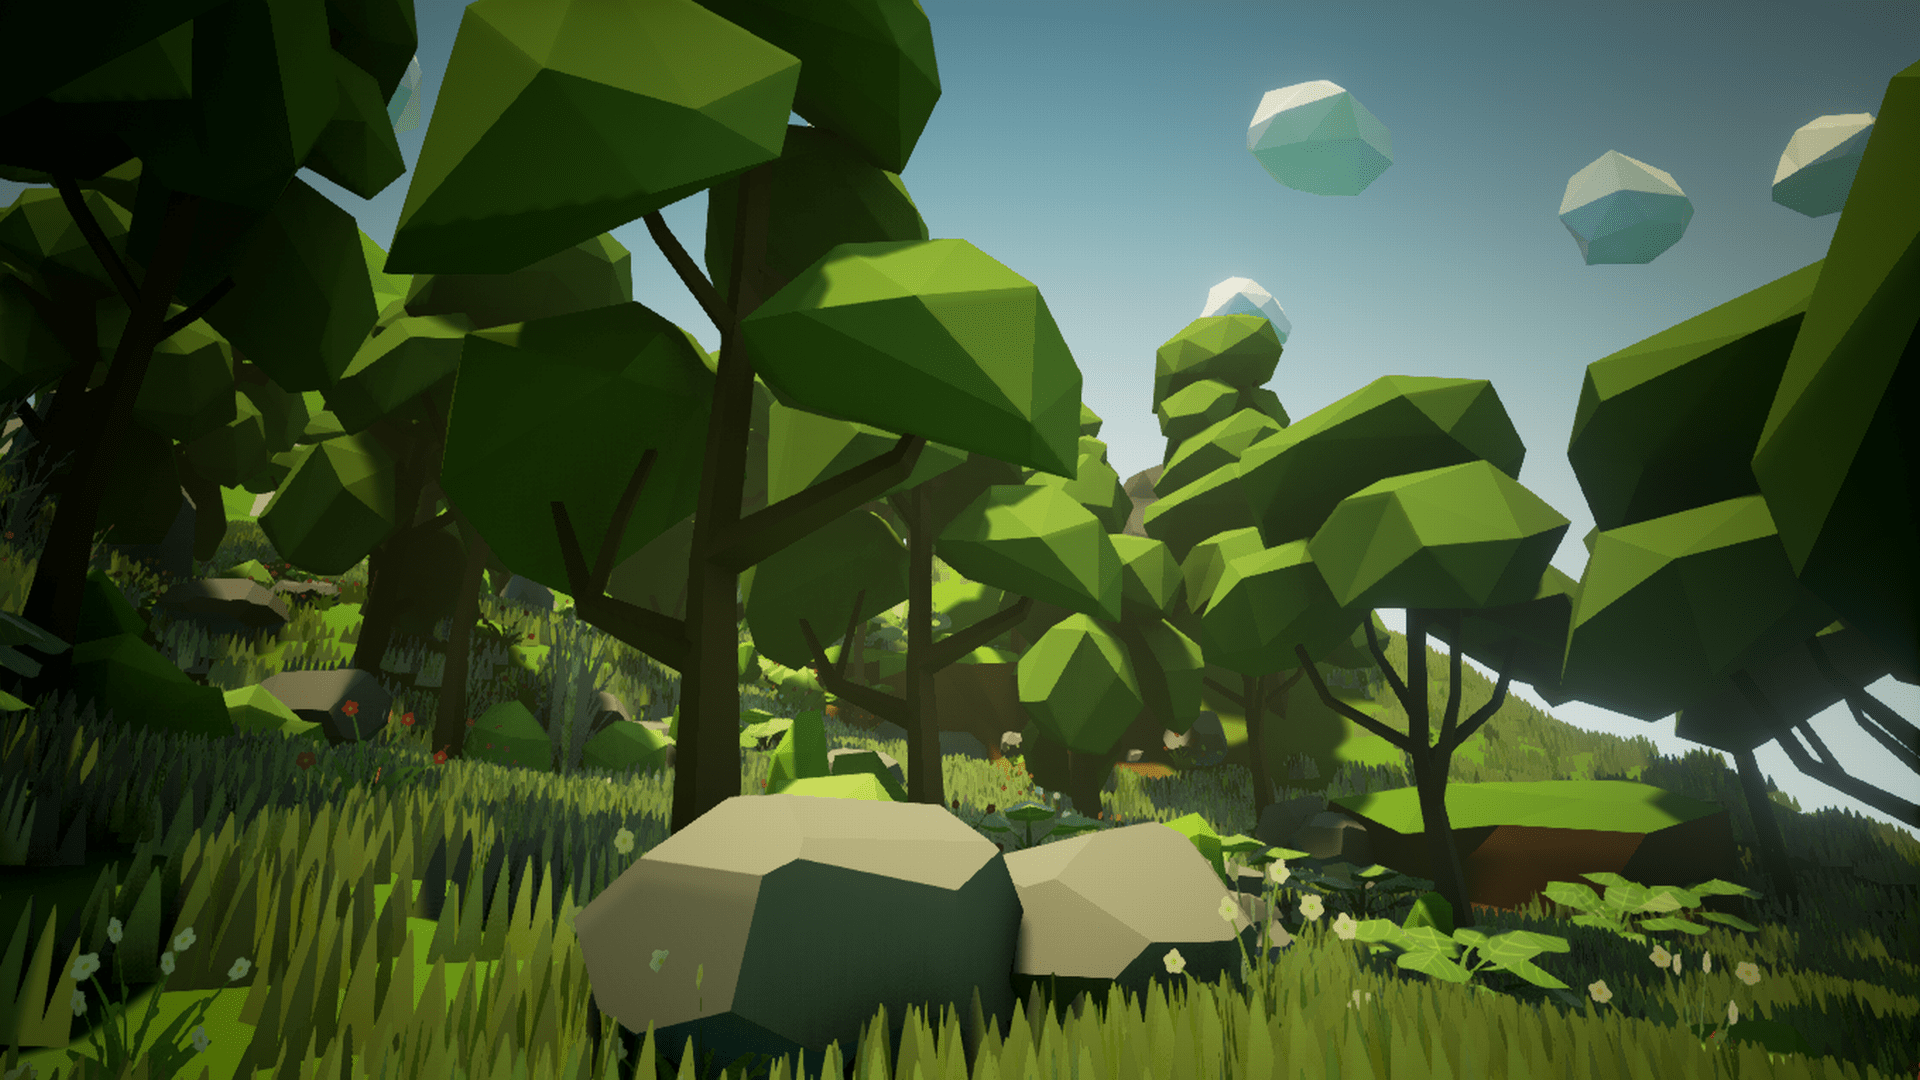 Unity 3d Wallpaper Olbert S Low Poly Forest By Whitman And Olbert In